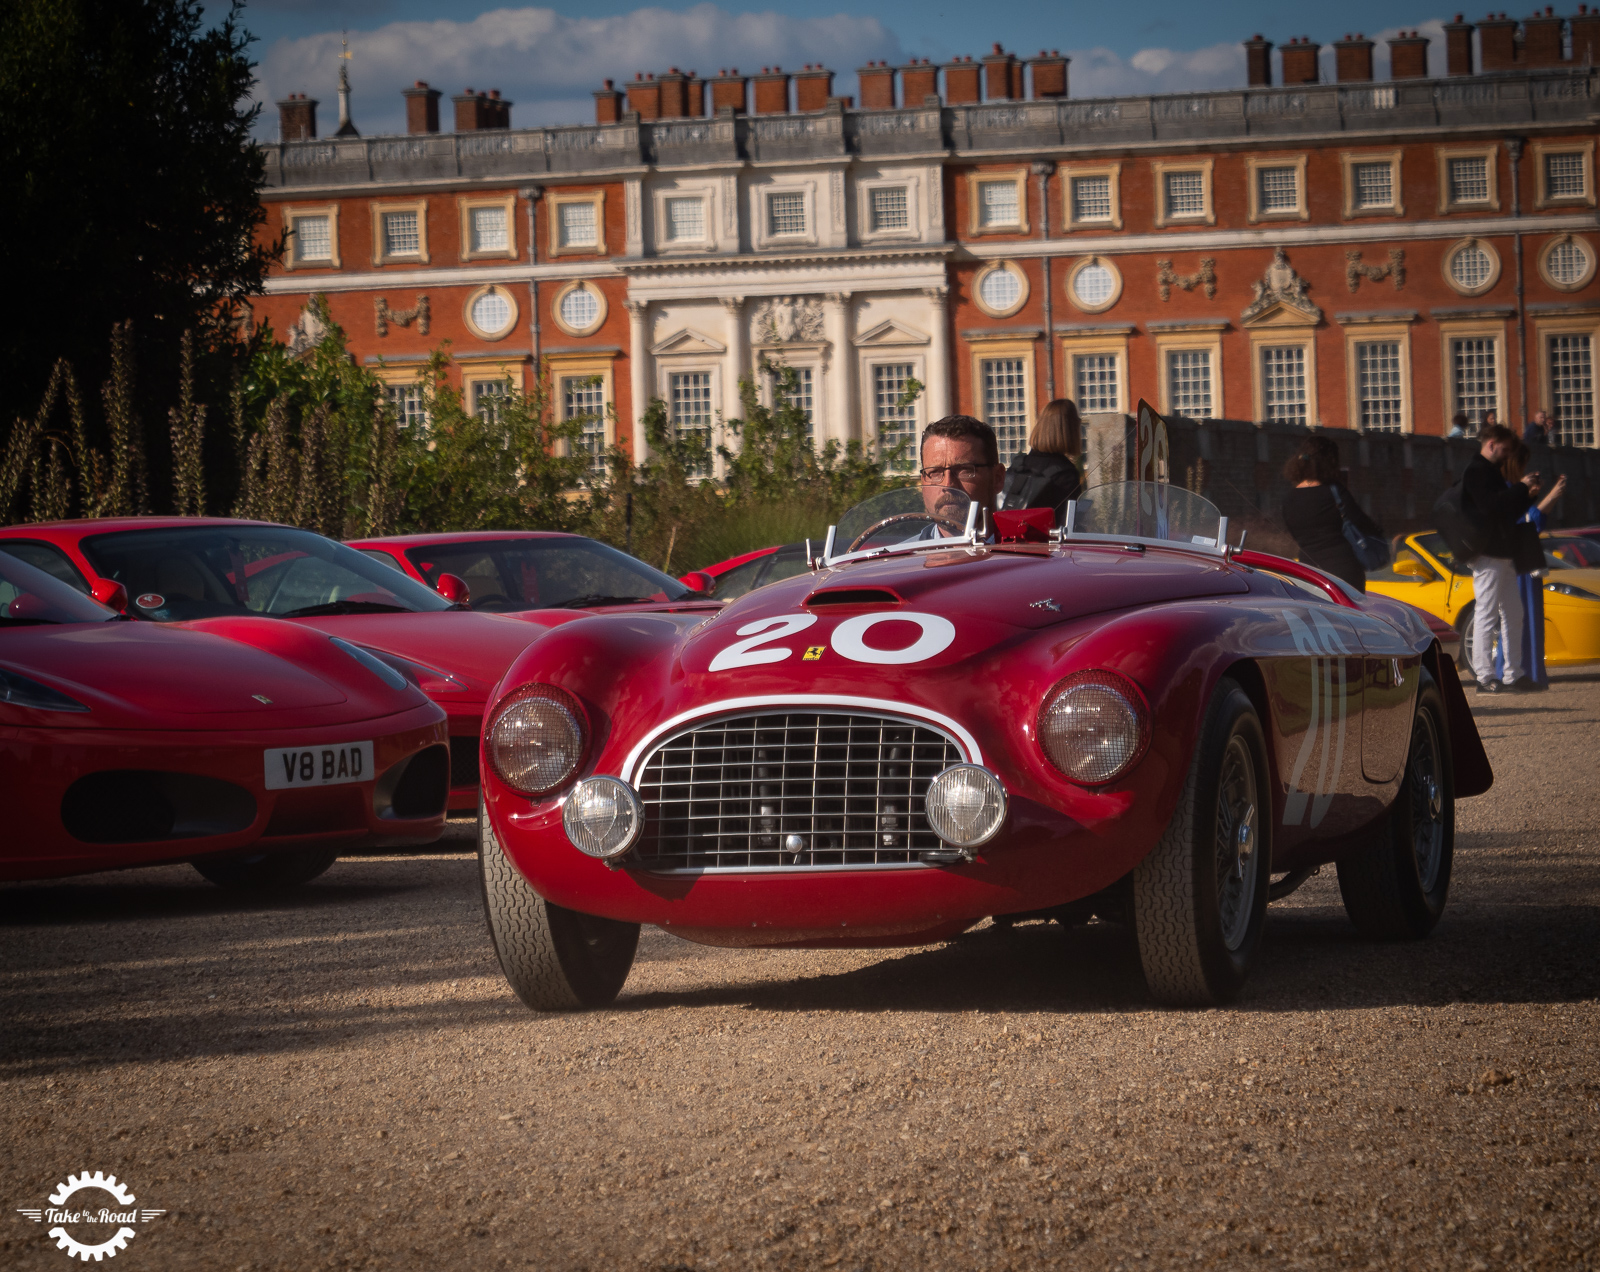 Concours of Elegance Hampton Court Palace Highlights 2019